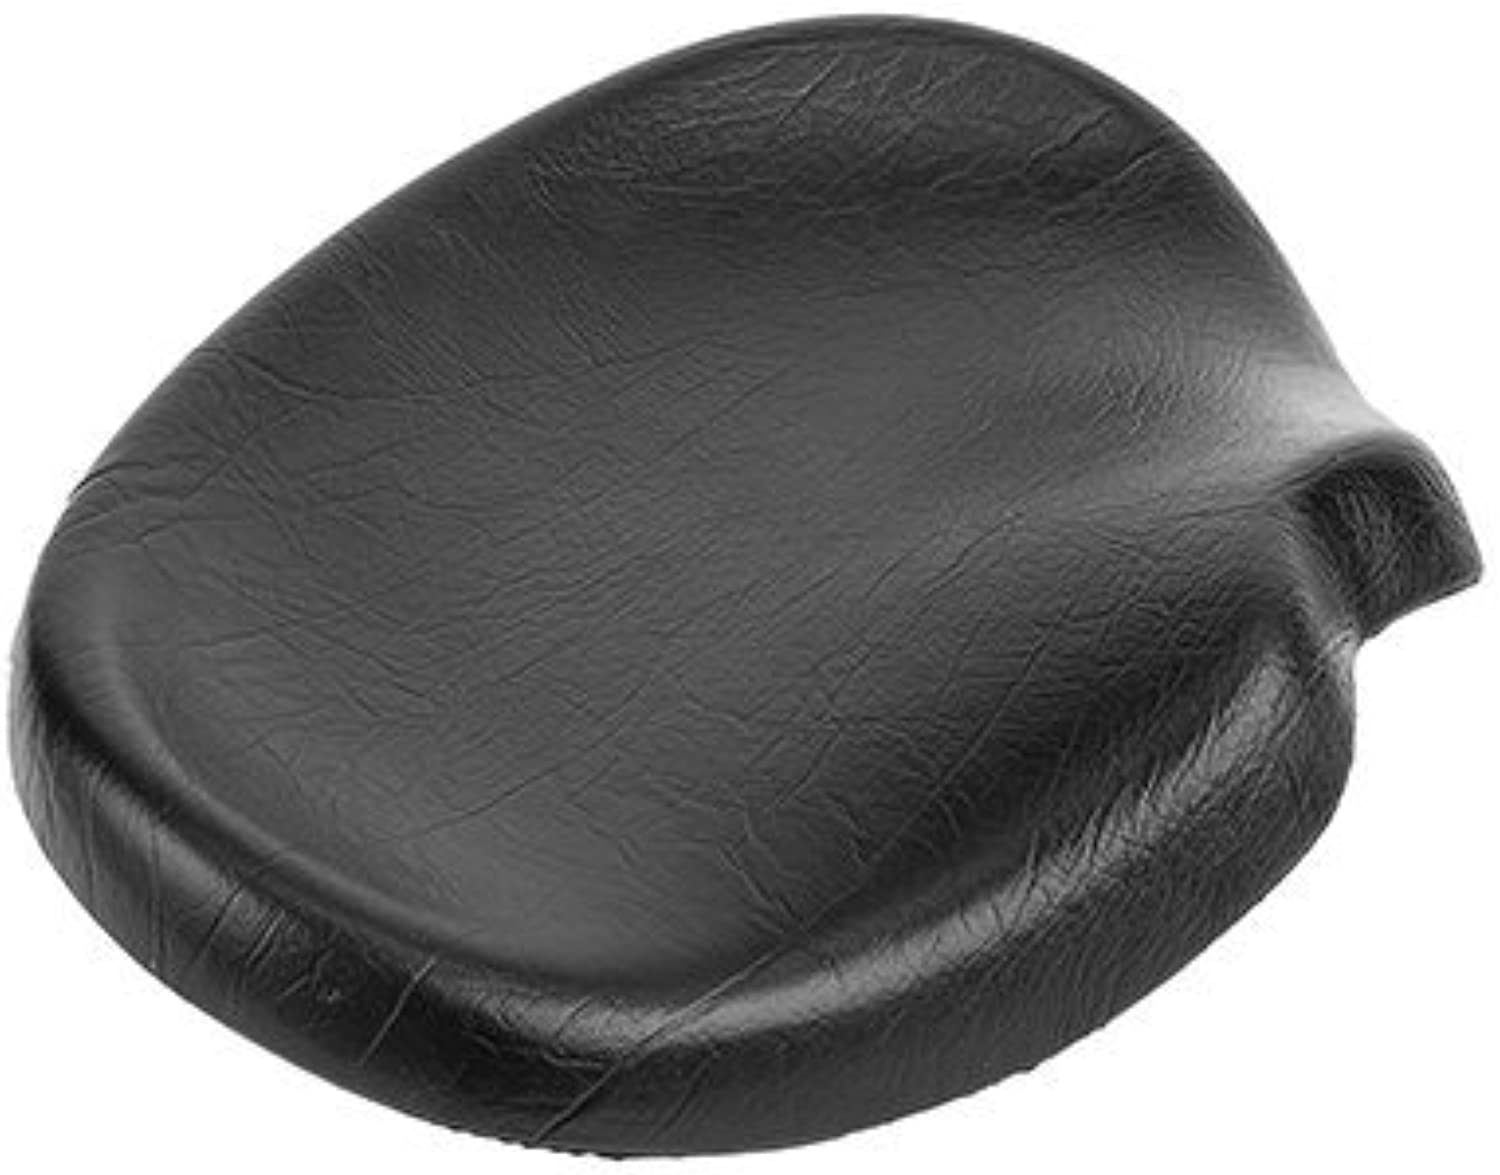 Sun Bicycles Trike Western Saddle with Harware, 16x12in, Black by SUN BICYCLES